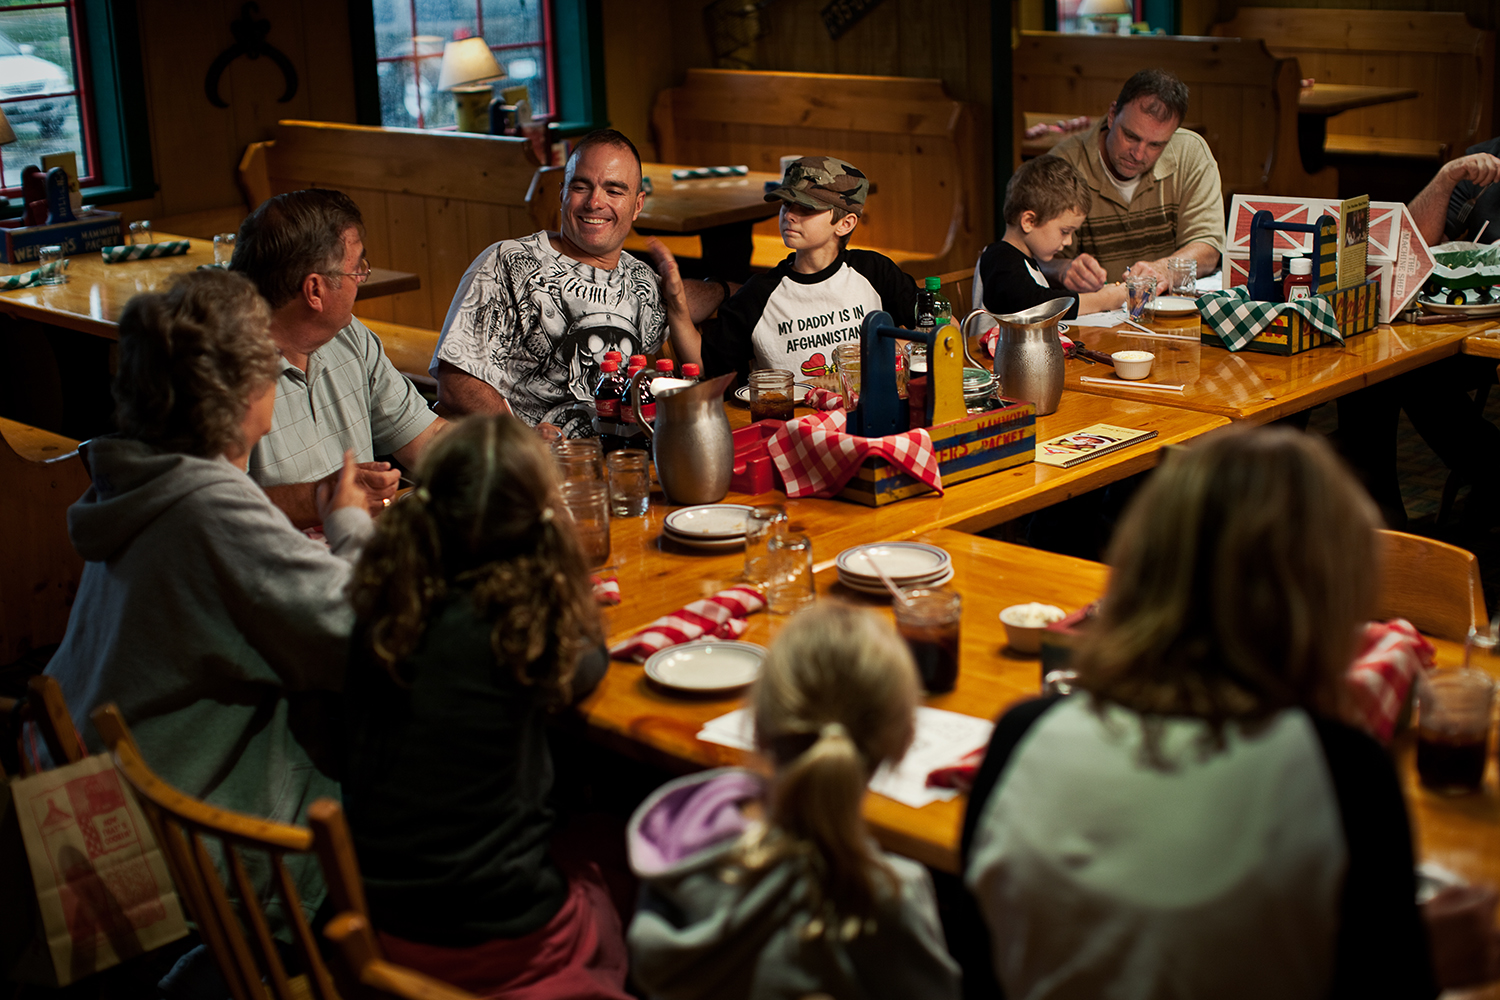 Friends and family of the Eisch family dine together to celebrate Sergeant First Class Brian Eisch's mid-tour leave in Appleton, Wis.